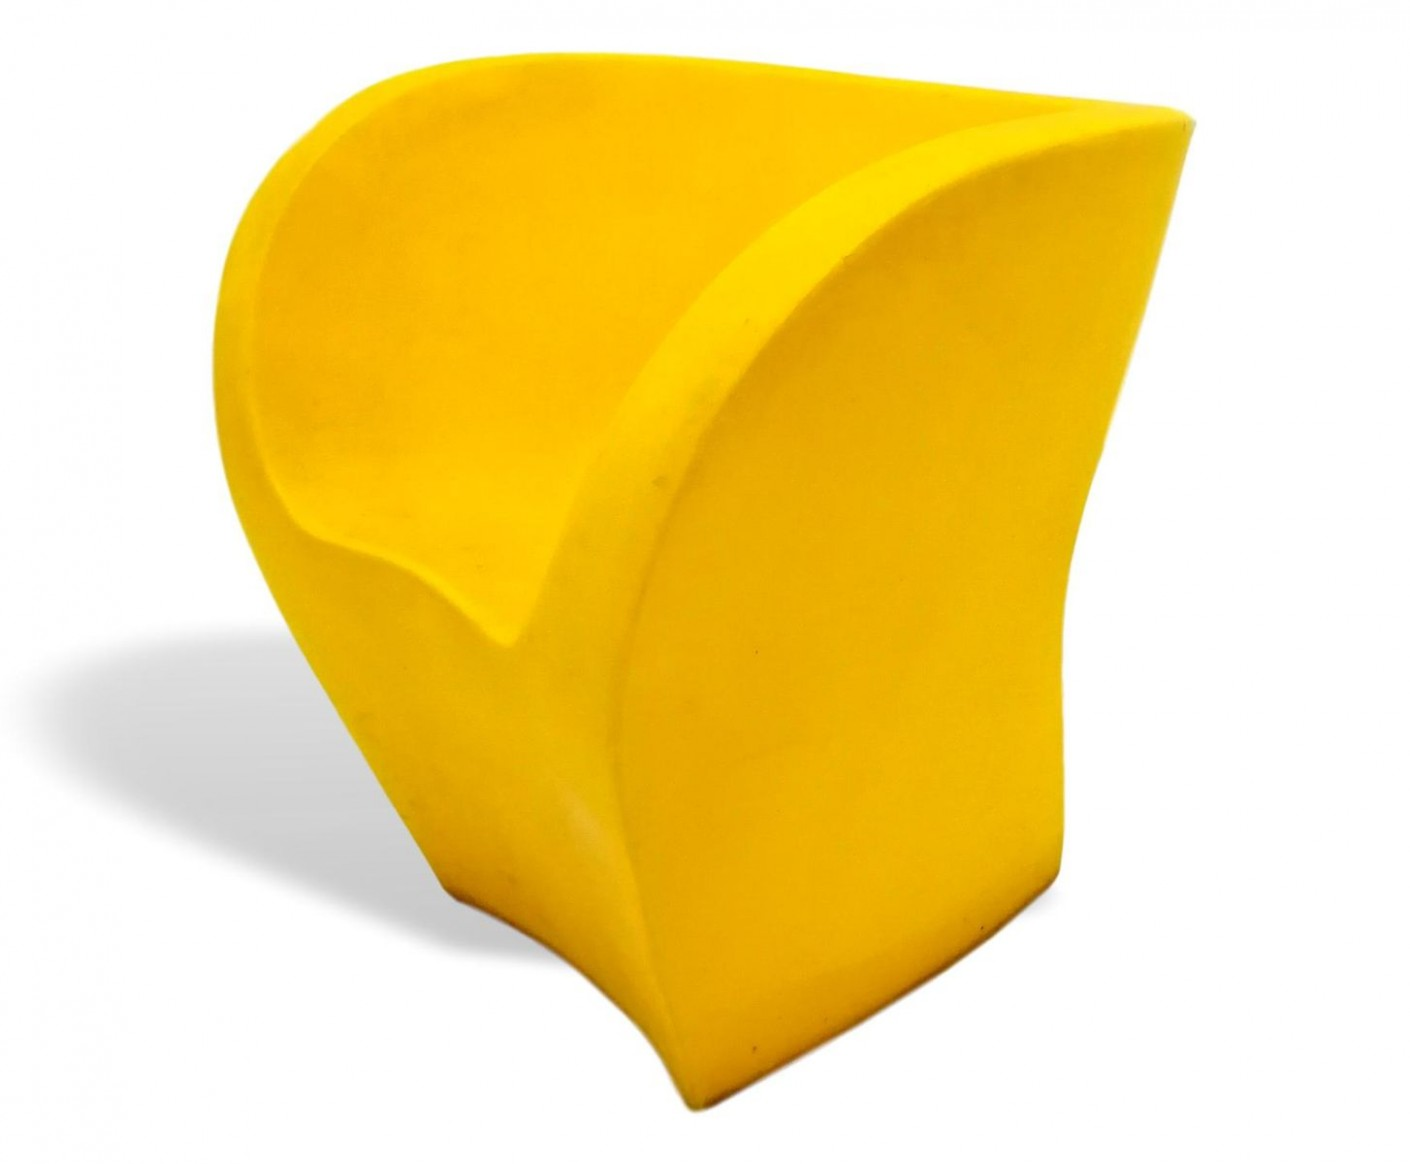 Little Albert Armchair by Ron Arad for Moroso, 80s for sale at Pamono